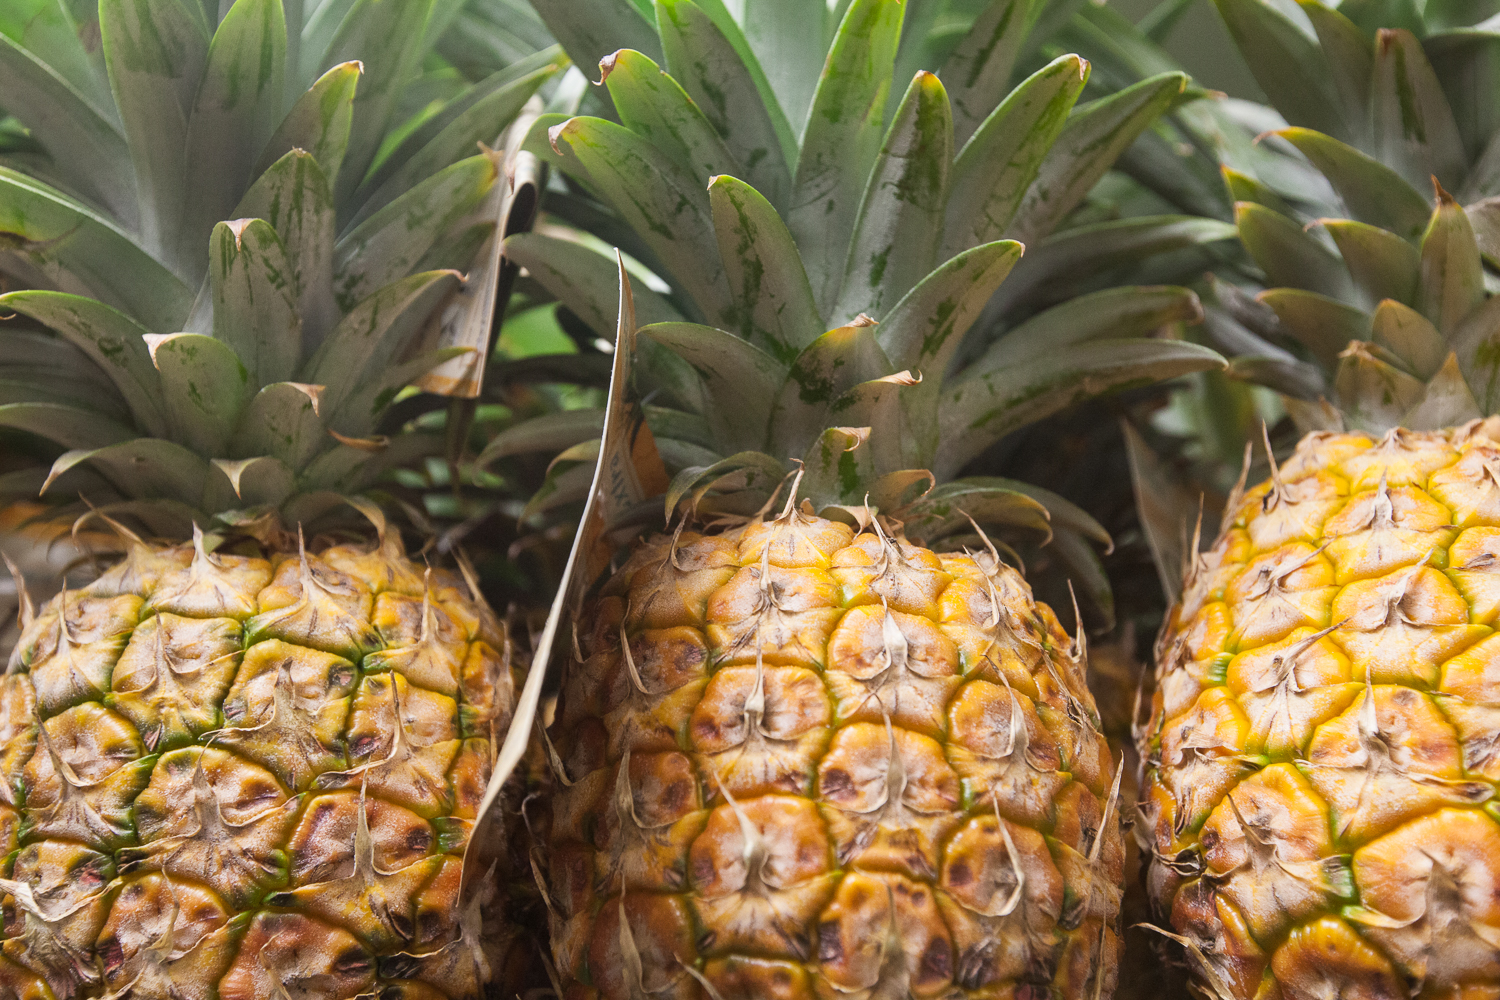 Mana Foods Display of Locally Grown Pineapple